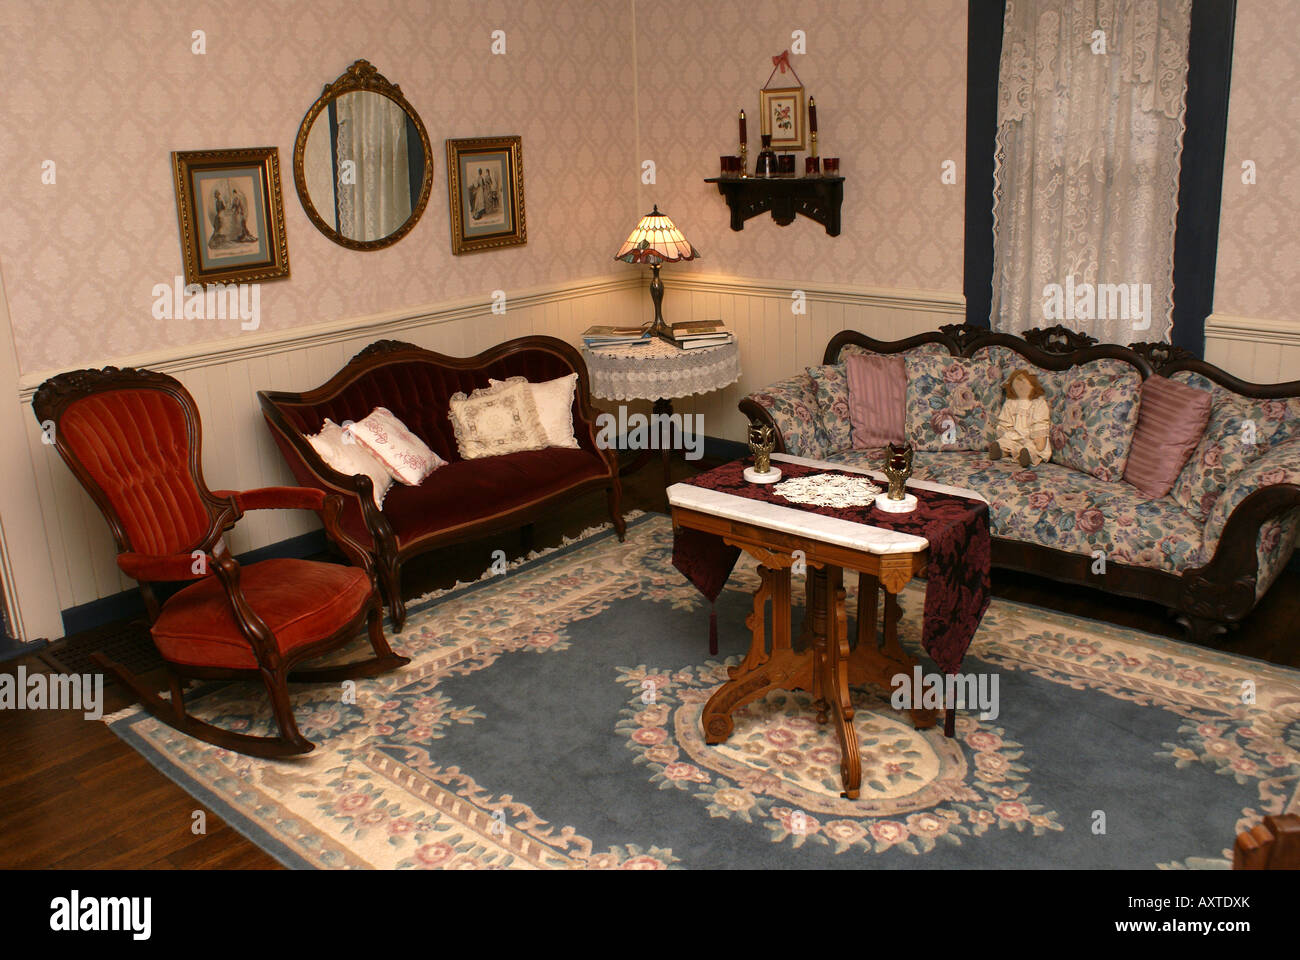 Old Fashioned Living Room Stock Photo Royalty Free Image